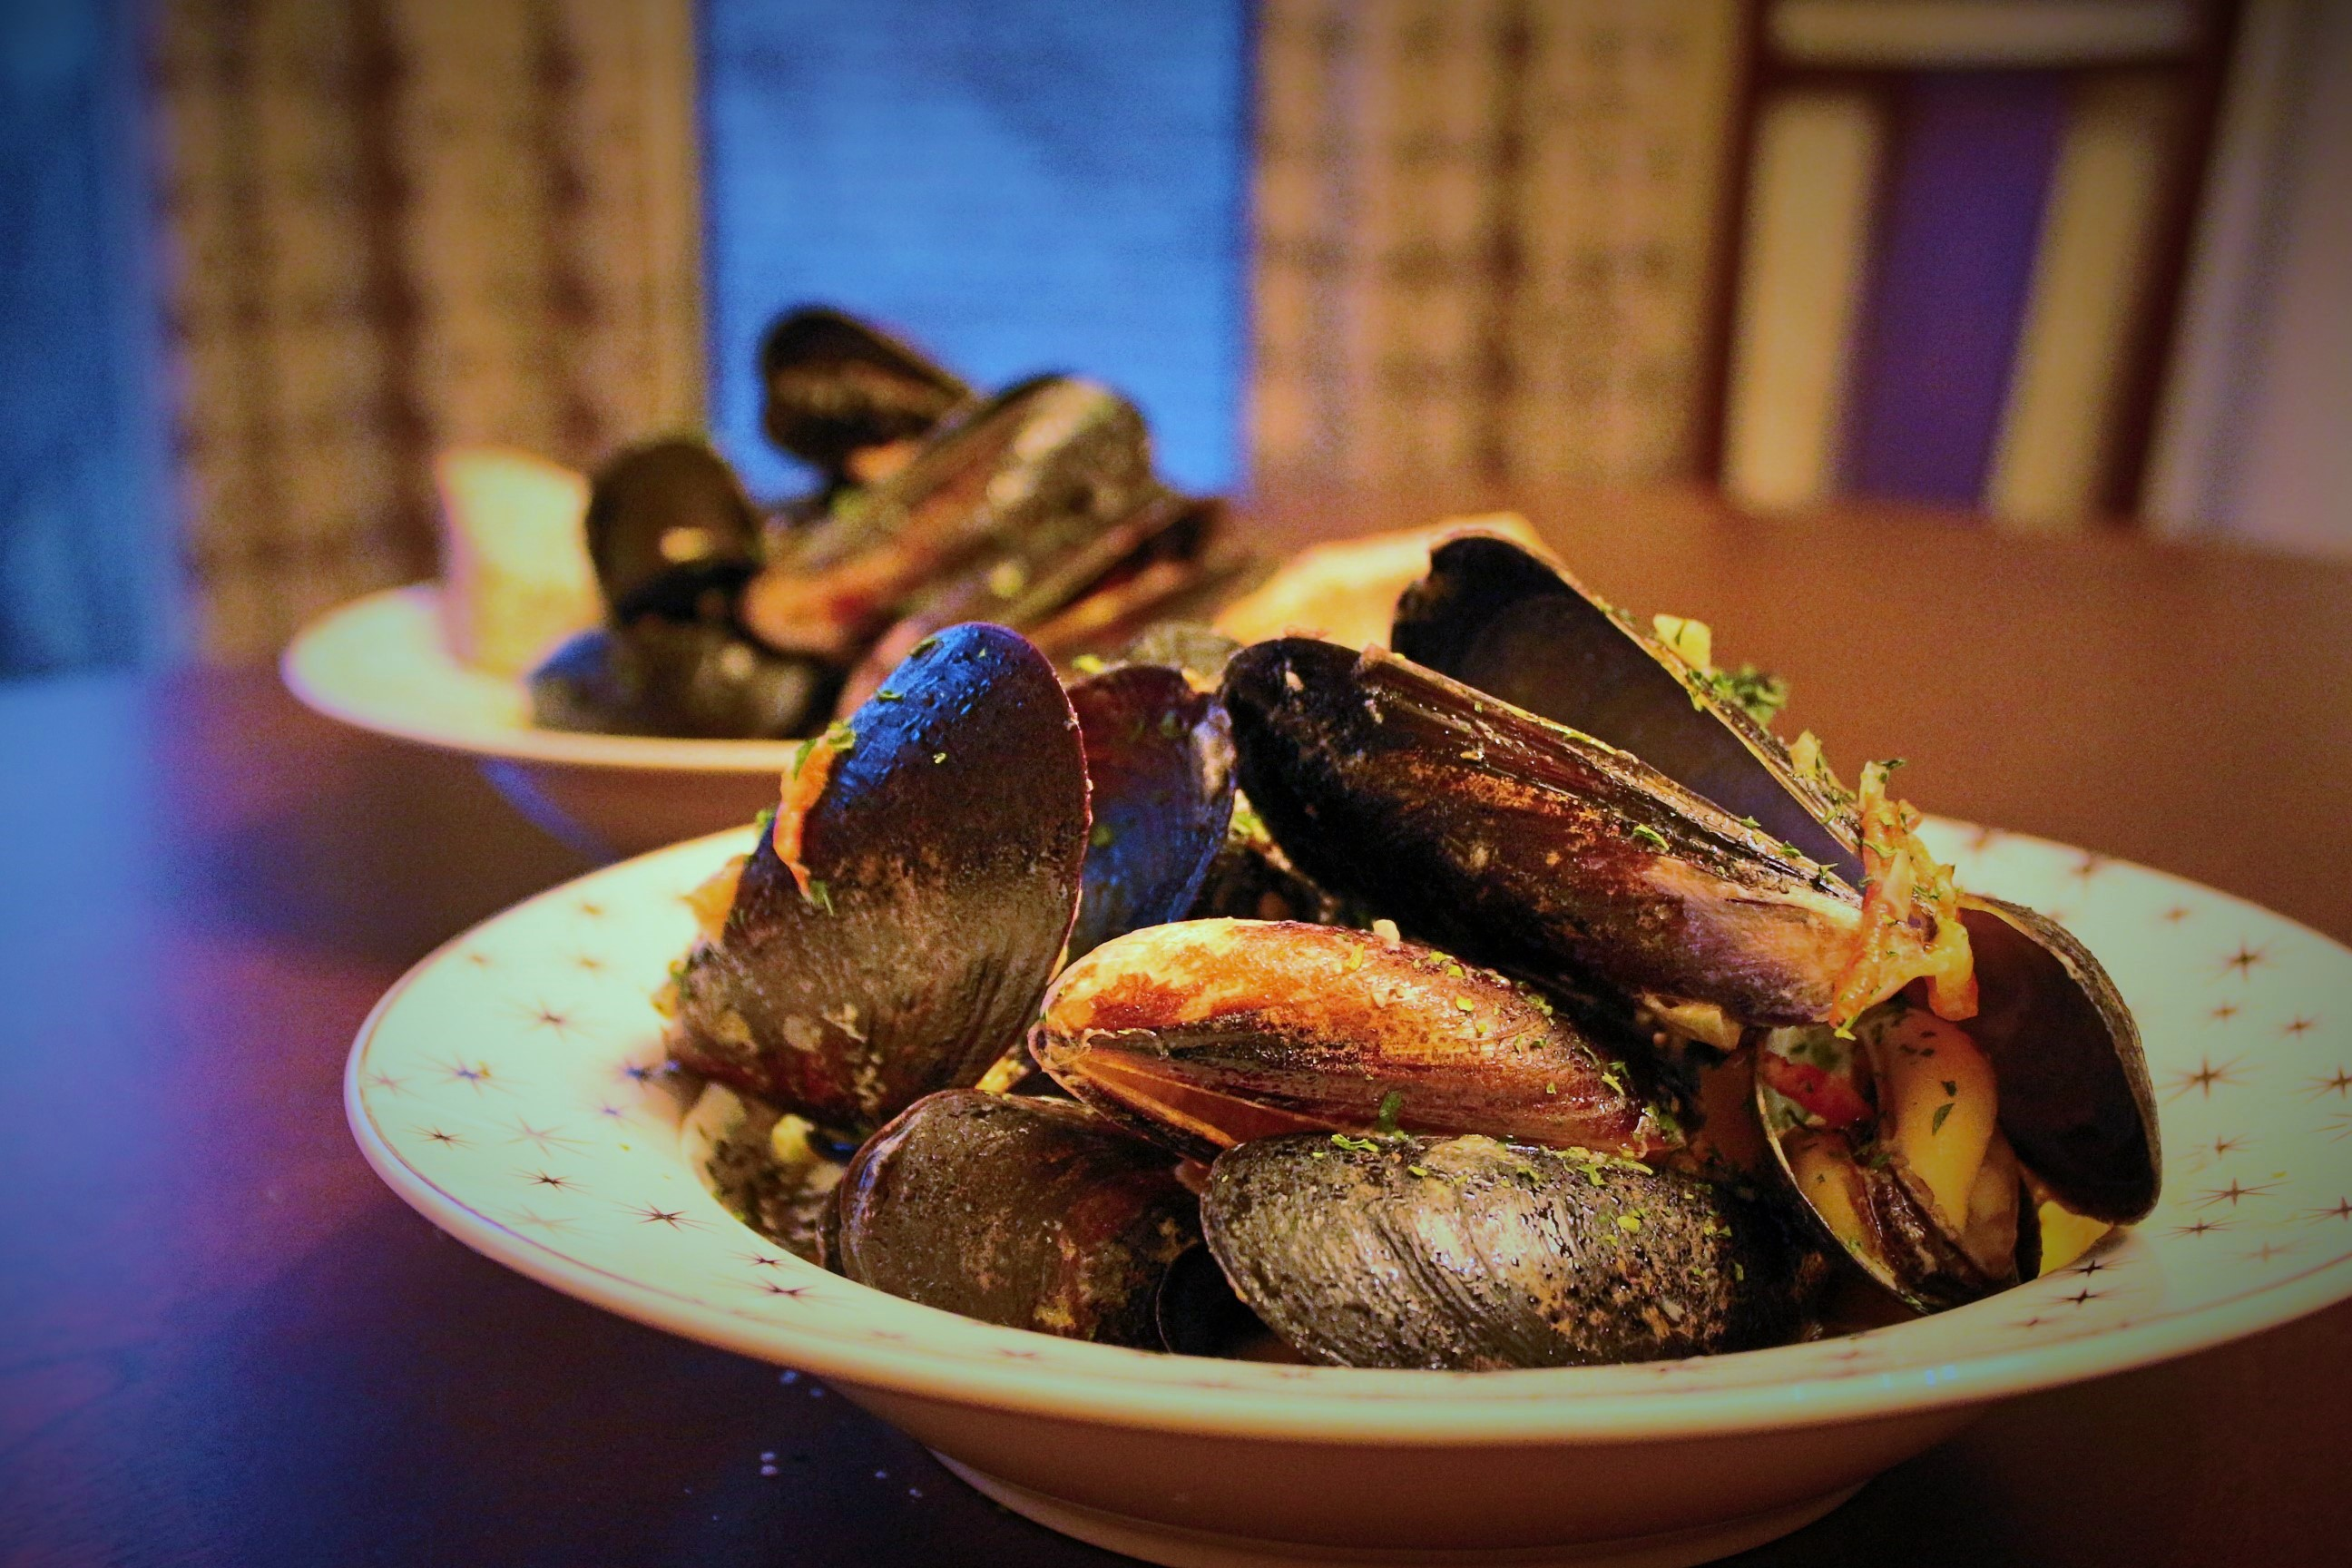 Steamed Mussels with White Wine and Garlic Cream